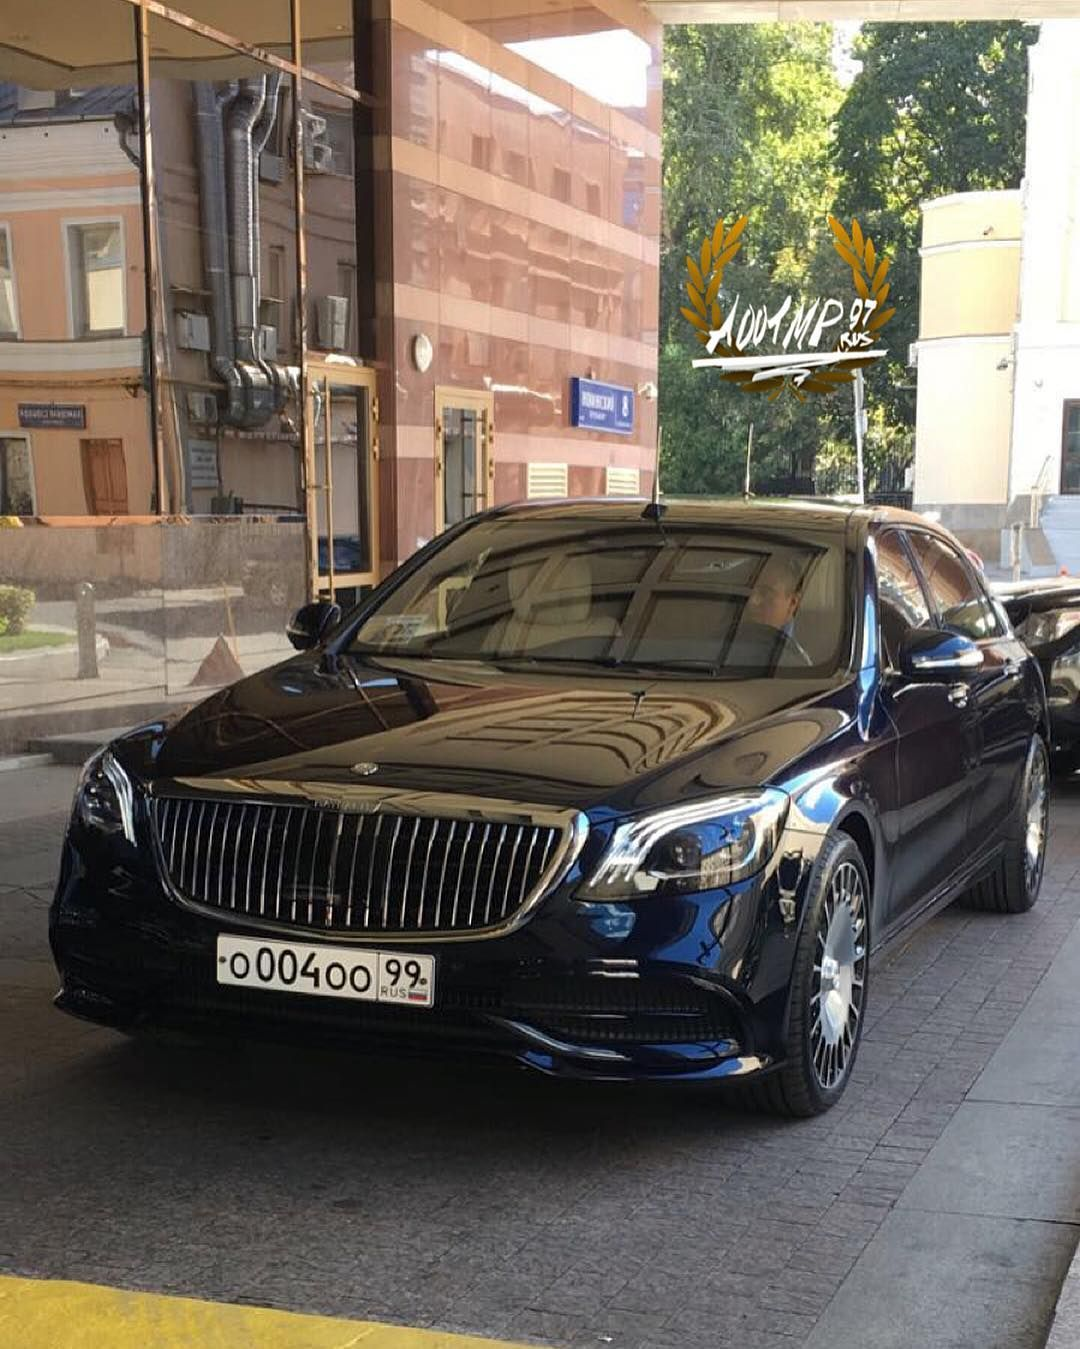 THE BOSS 👌🏻 ️⚫️👁🗨 • MERCEDES MAYBACH S560 • The Ultimate